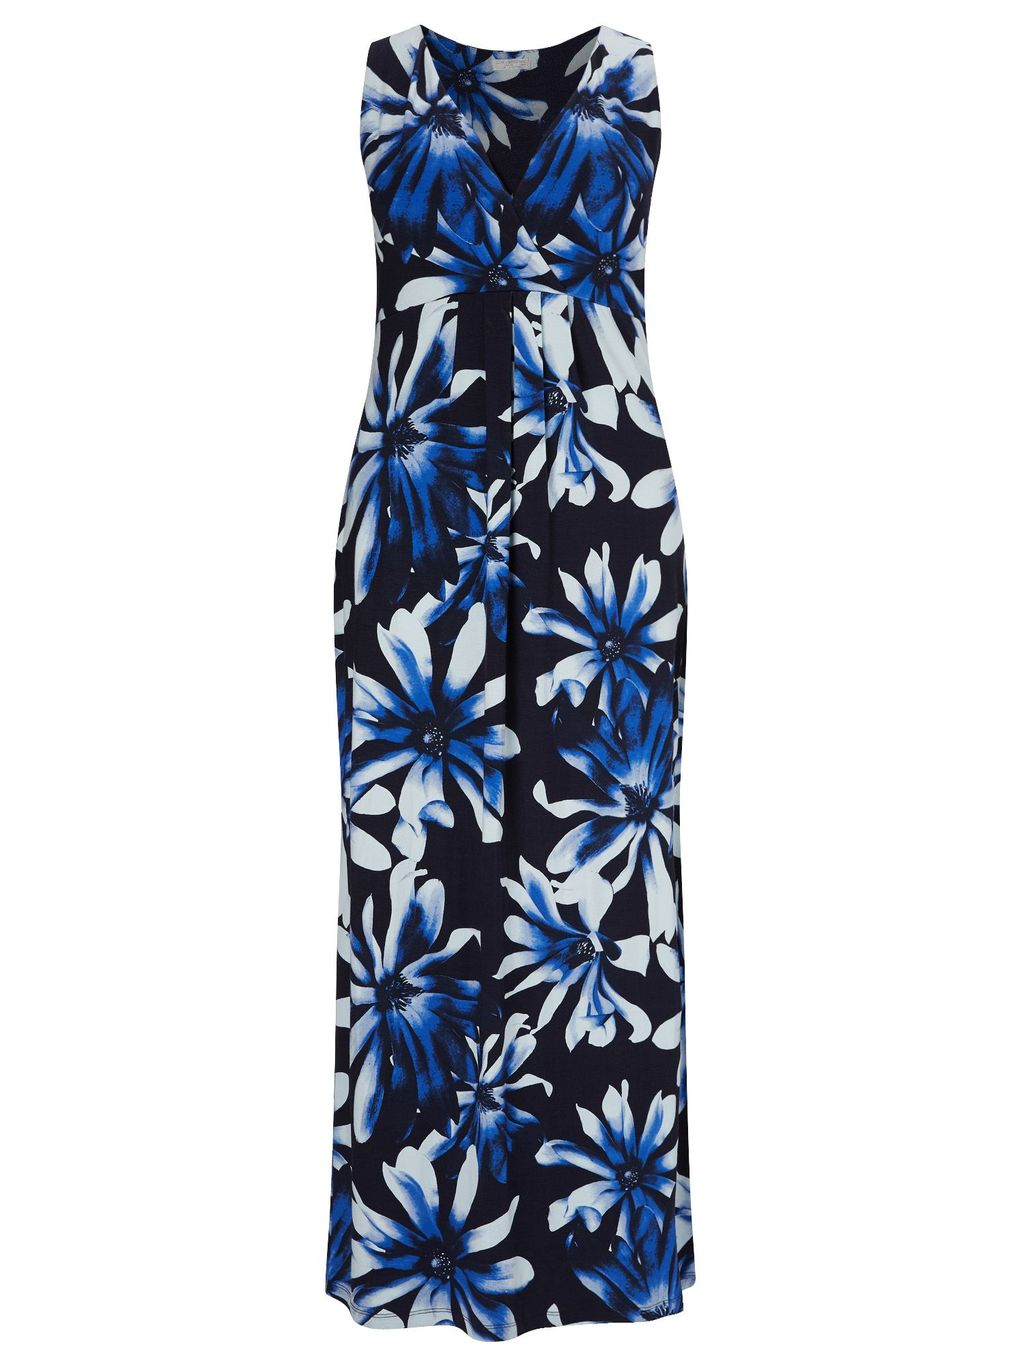 Anise Print Maxi Dress, Blue - style: tea dress; neckline: v-neck; sleeve style: sleeveless; secondary colour: white; predominant colour: navy; occasions: evening; length: floor length; fit: body skimming; fibres: viscose/rayon - stretch; sleeve length: sleeveless; pattern type: fabric; pattern: florals; texture group: jersey - stretchy/drapey; multicoloured: multicoloured; season: s/s 2016